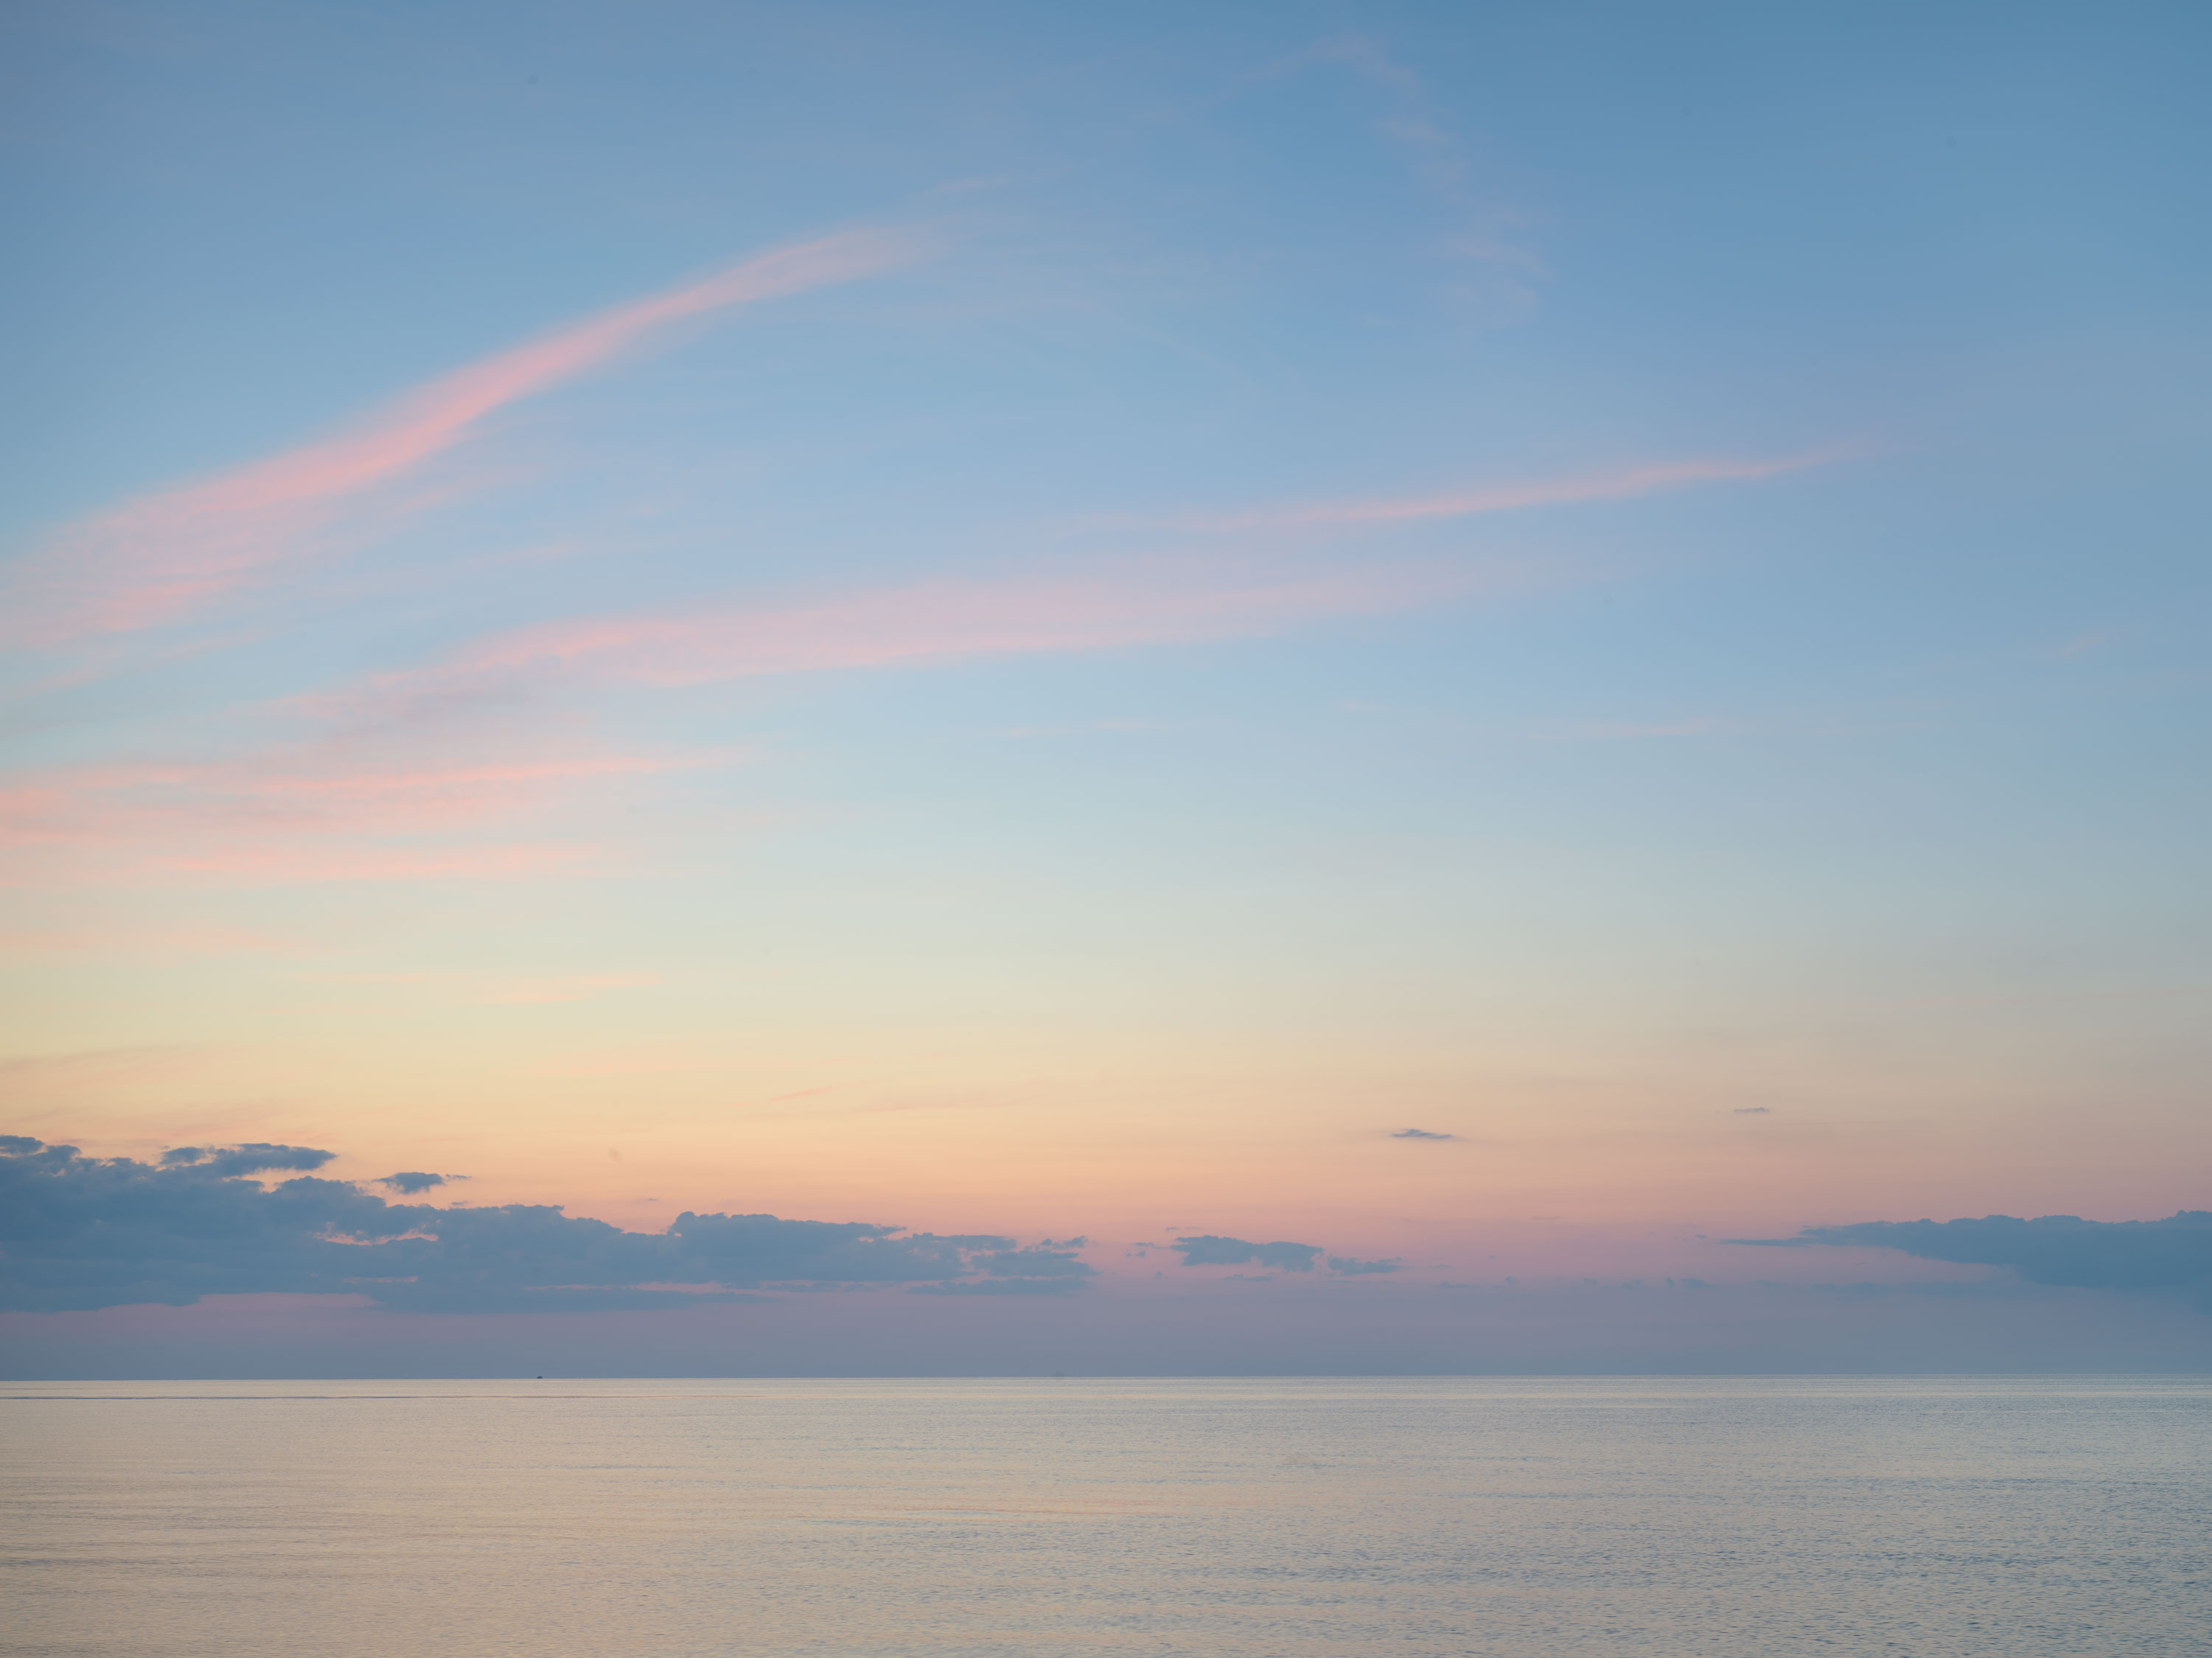 Galley Beach Sunset #0767  |  Nantucket  |  Michael Gaillard